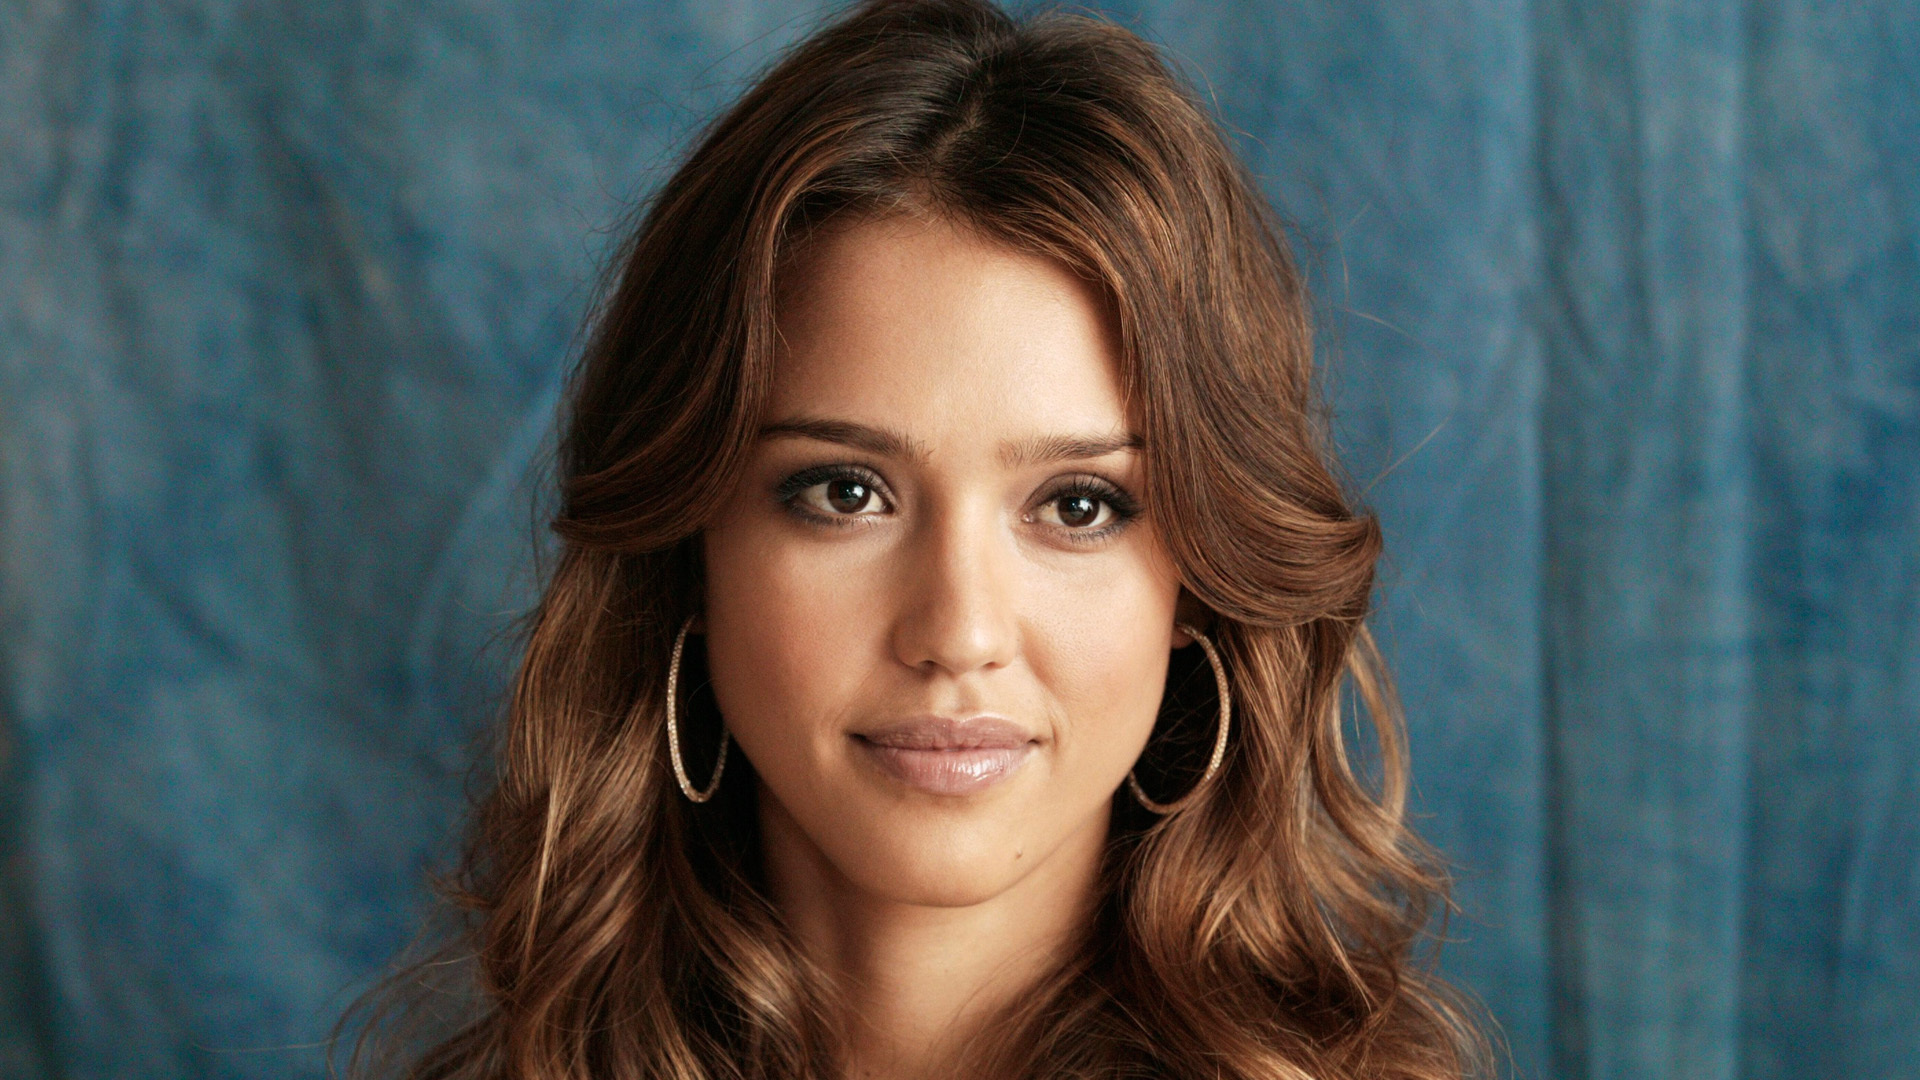 Download this Jessica Alba Lovely Wallpaper picture